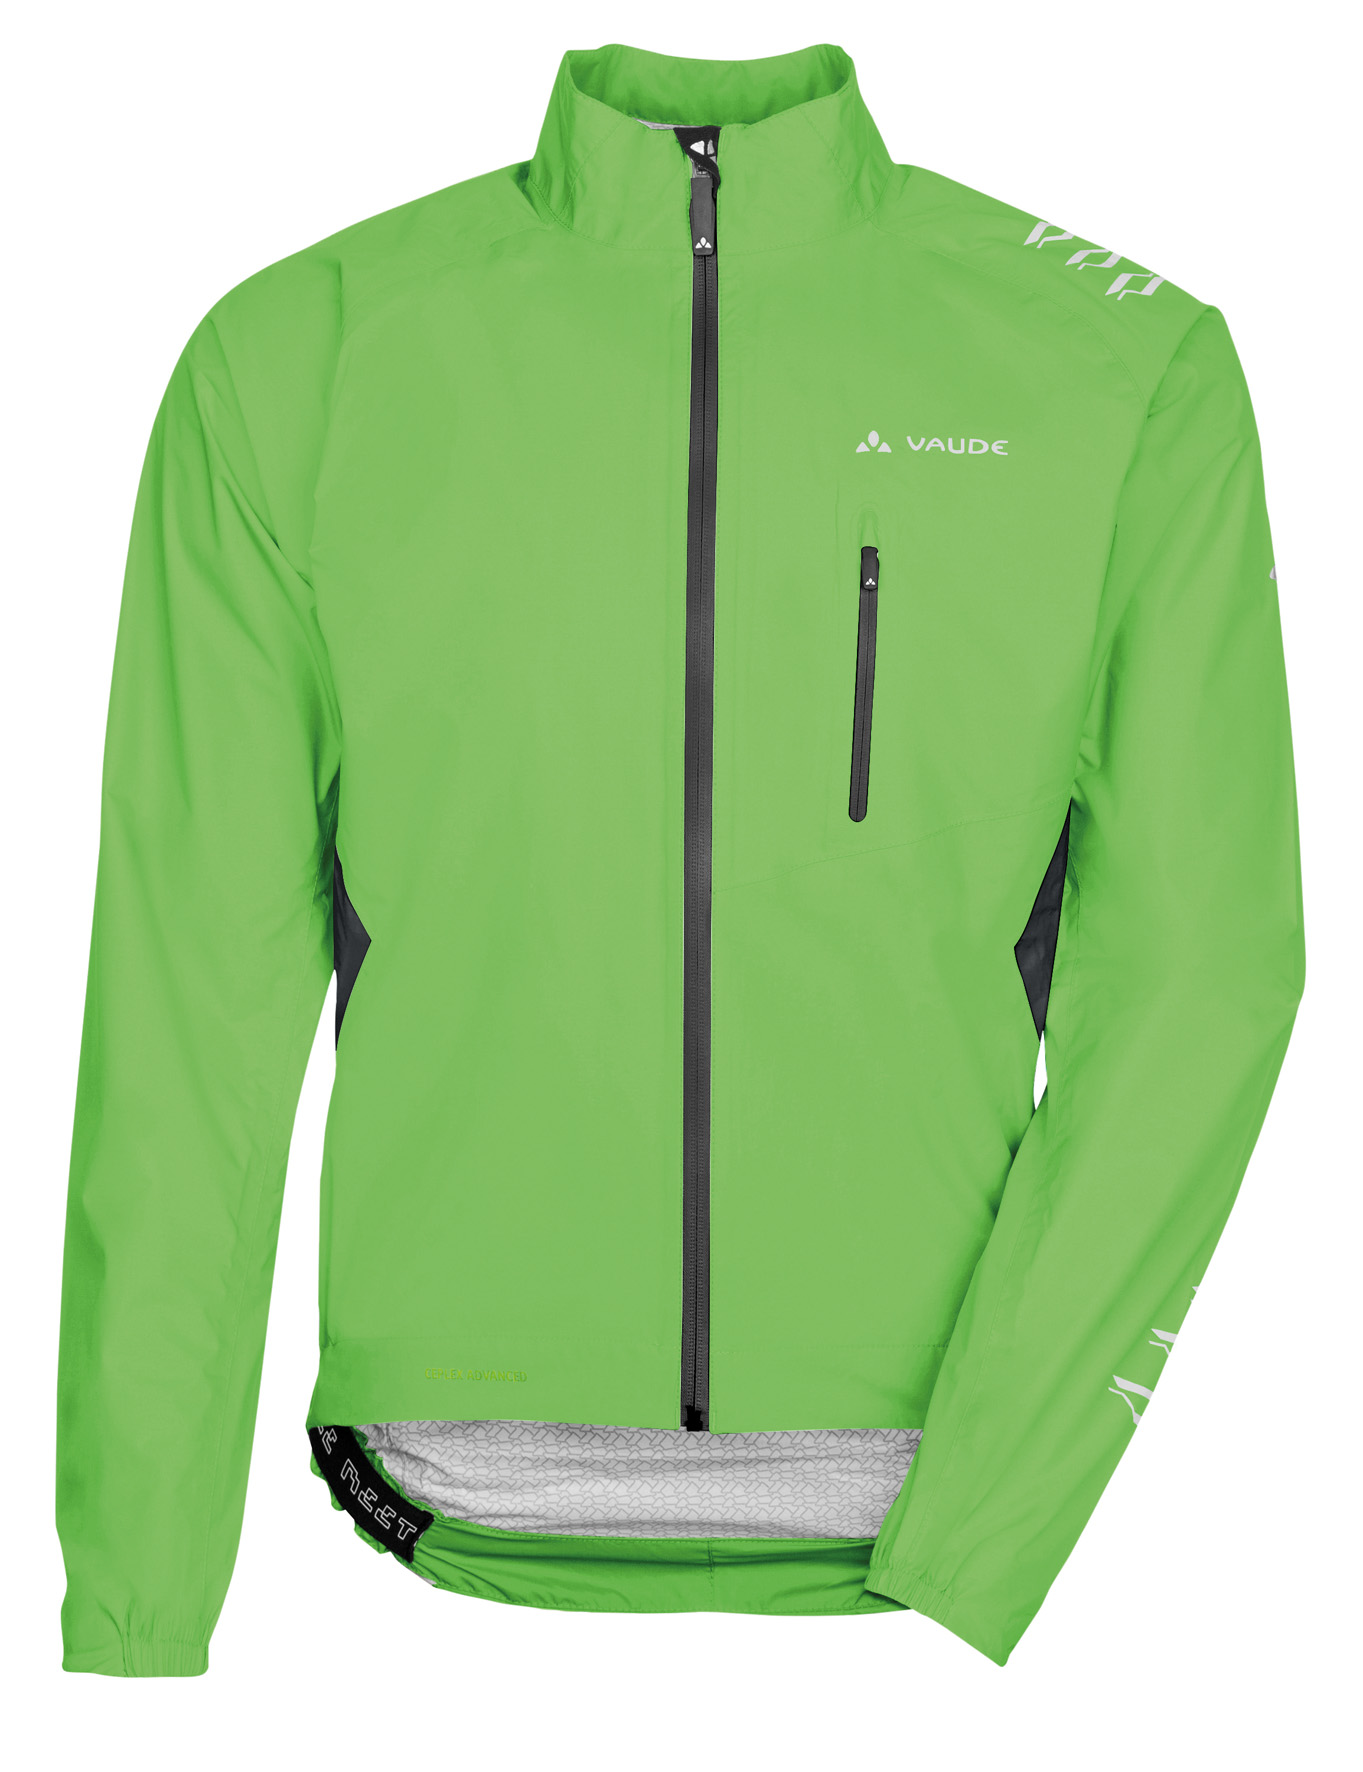 VAUDE Men´s Spray Jacket IV gooseberry Größe XL - Total Normal Bikes - Onlineshop und E-Bike Fahrradgeschäft in St.Ingbert im Saarland